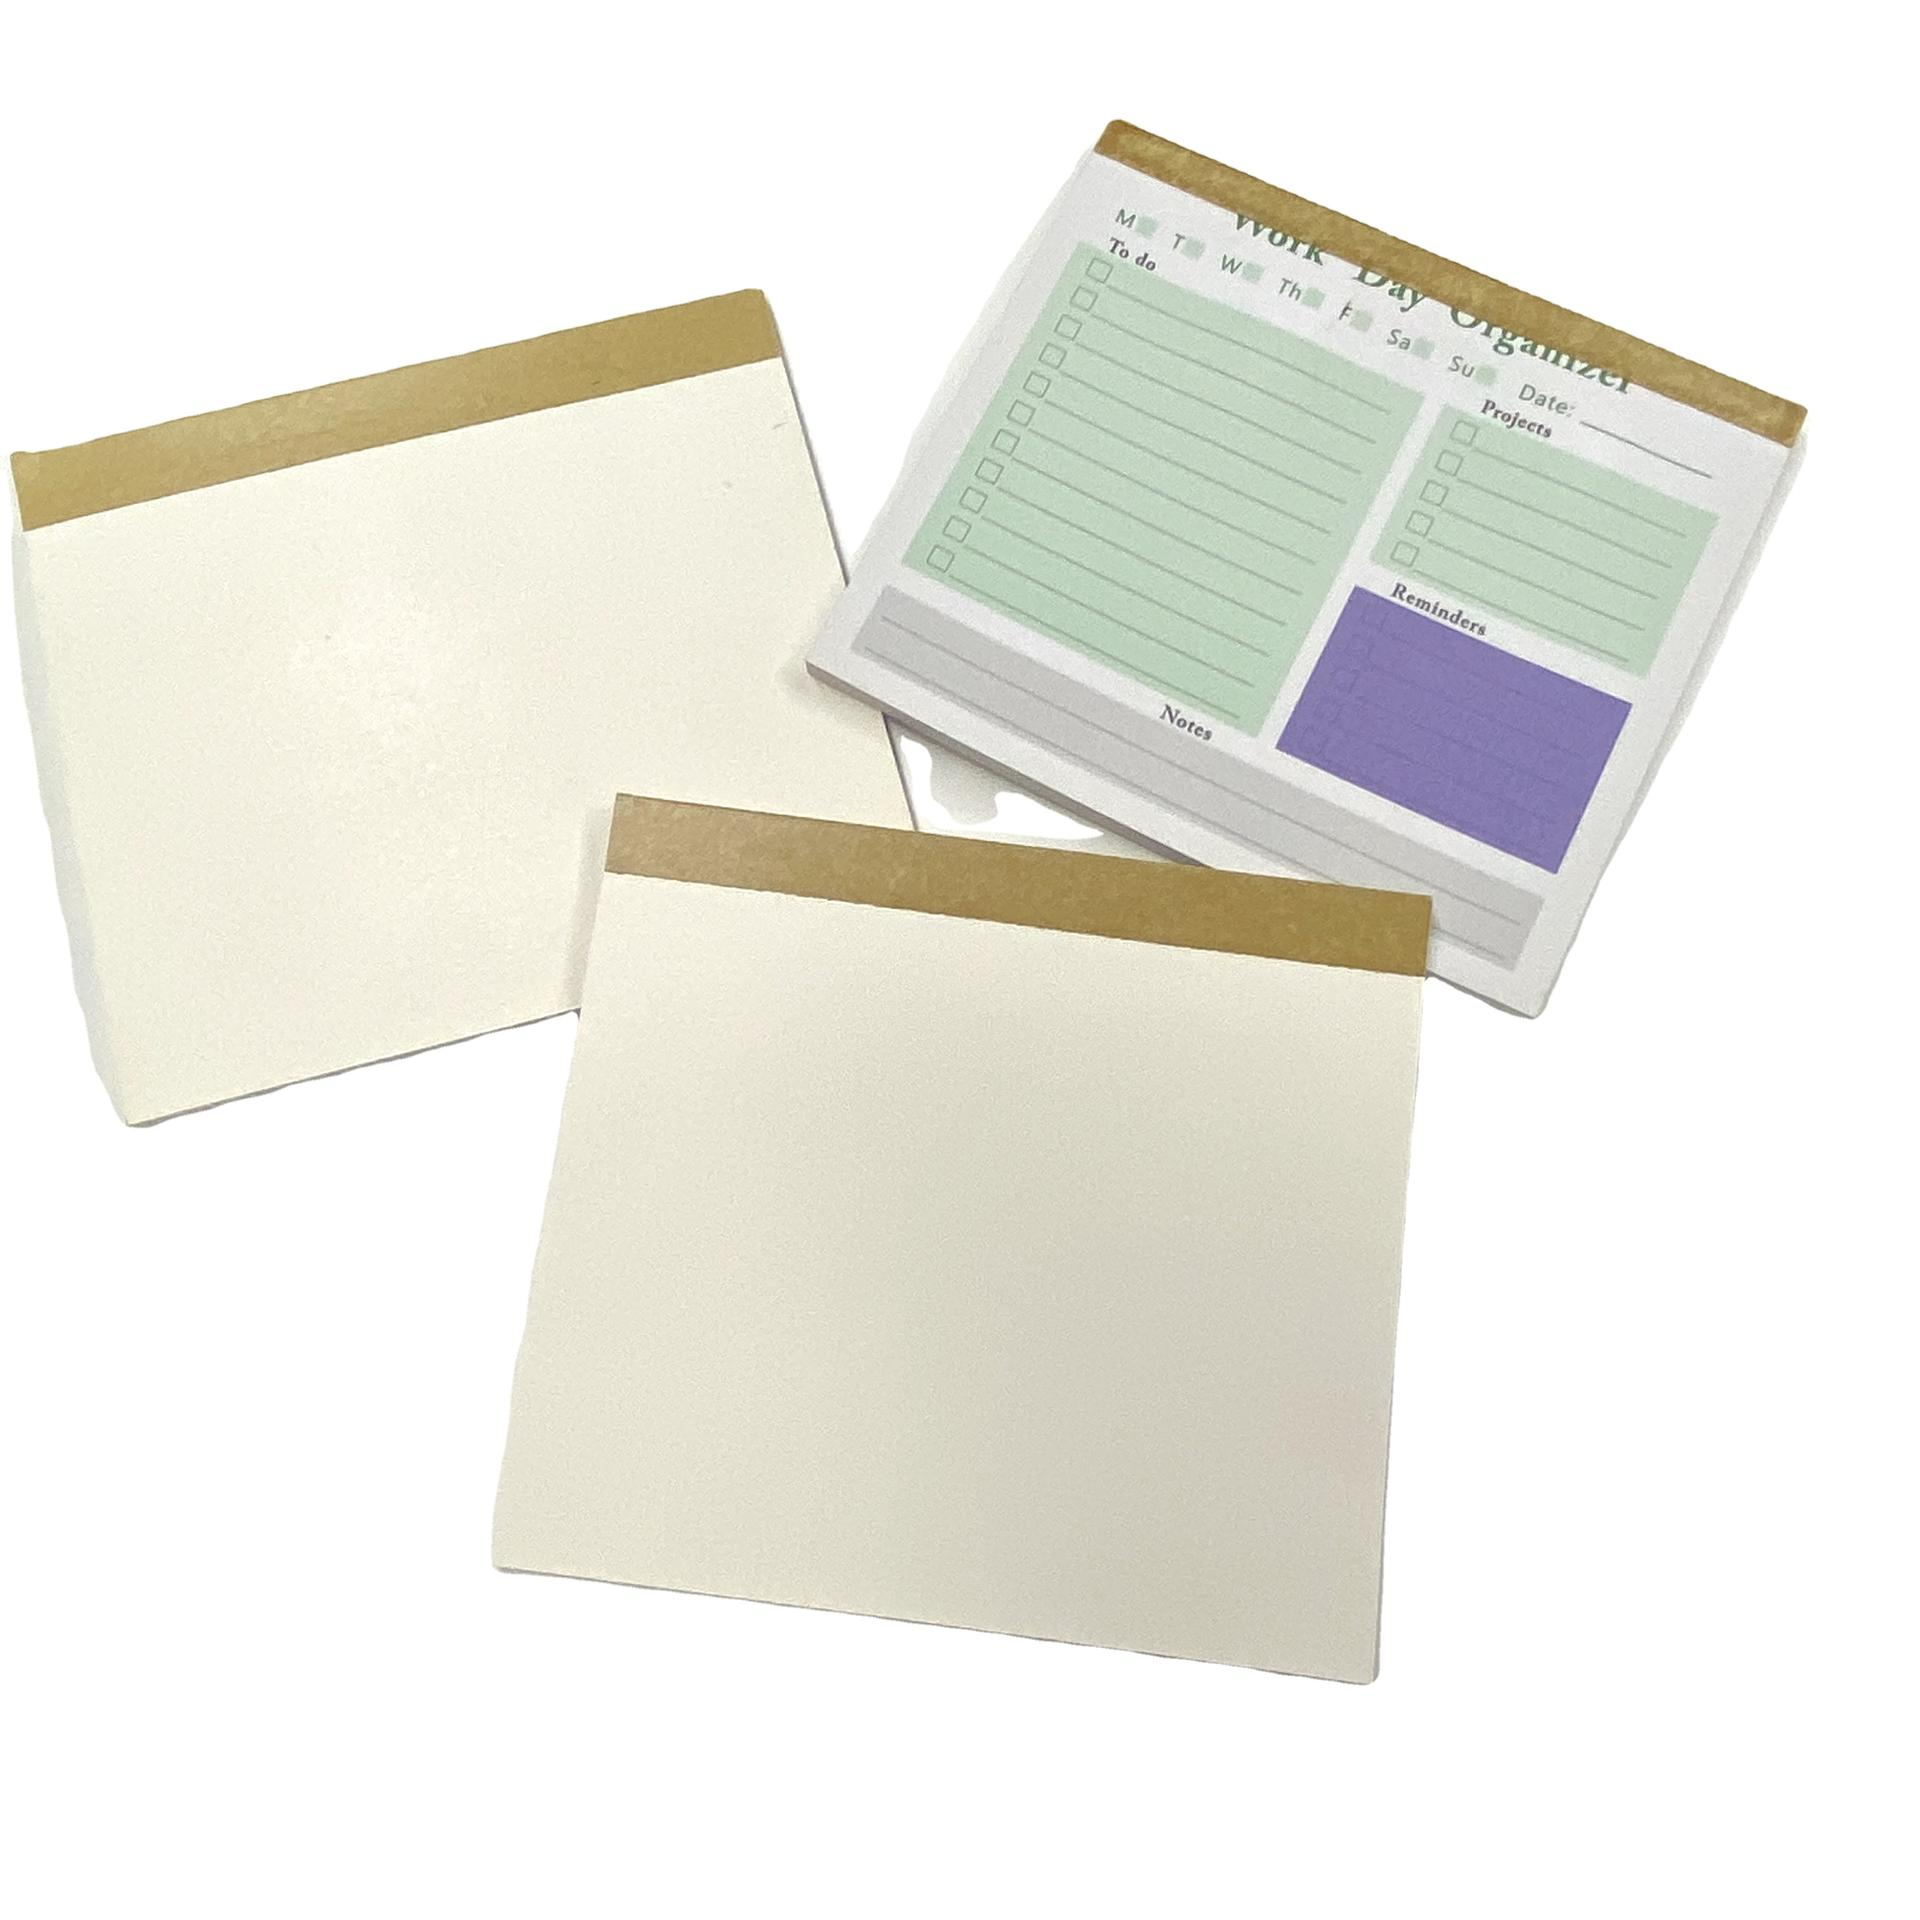 product-Dezheng-Custom Planner Stickers Notebook With Sticky Notes To do List Notepad-img-1